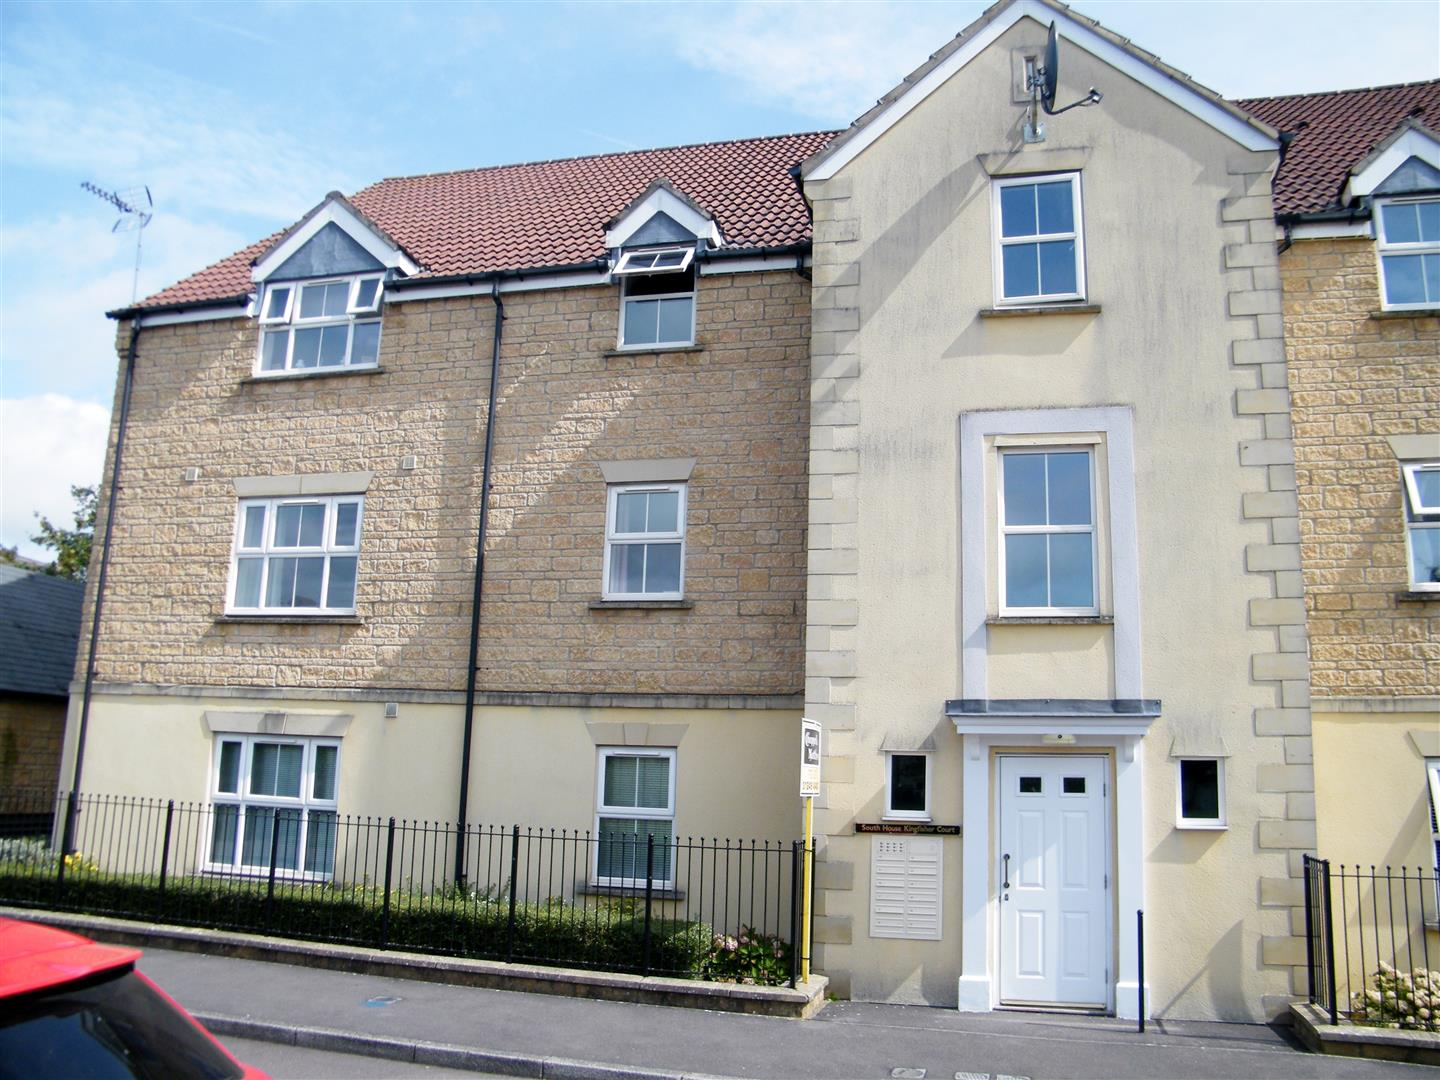 2 Bedrooms Flat for sale in Kingfisher Court, Calne